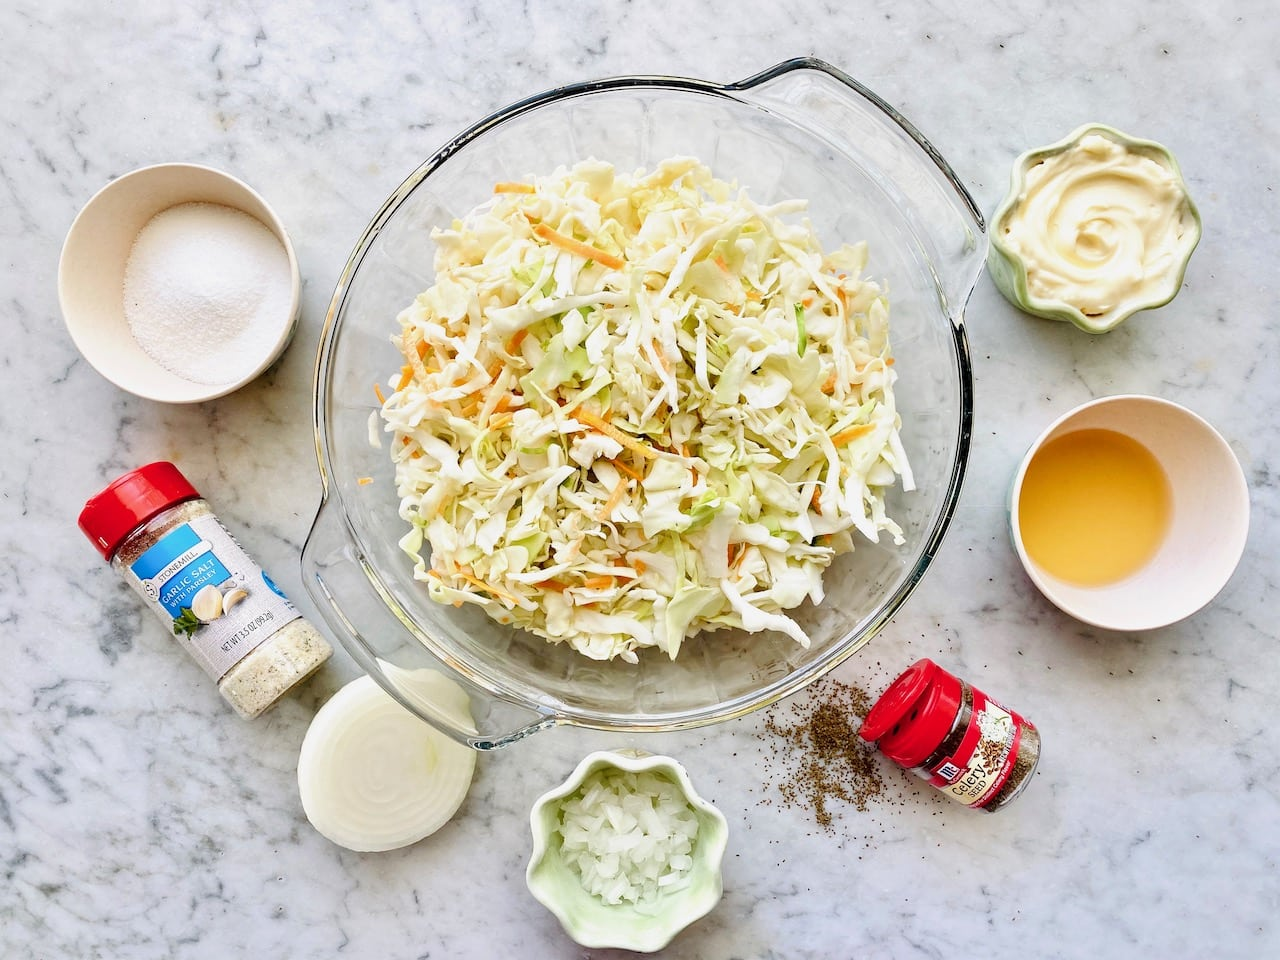 ingredients for creamy coleslaw